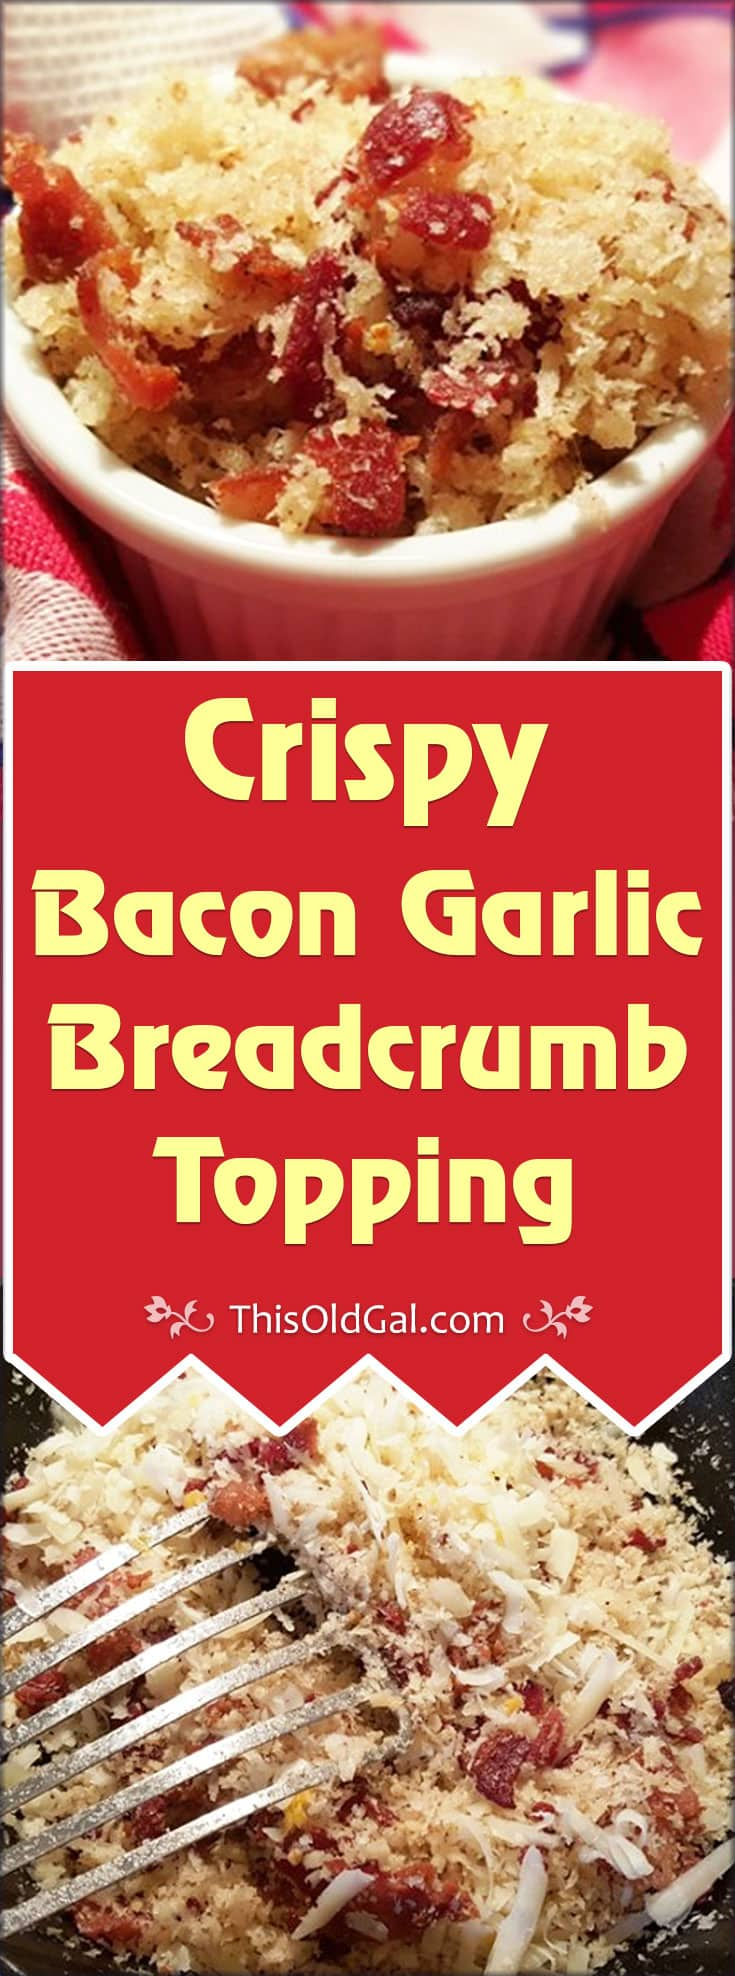 Crispy Bacon Garlic Breadcrumb Topping